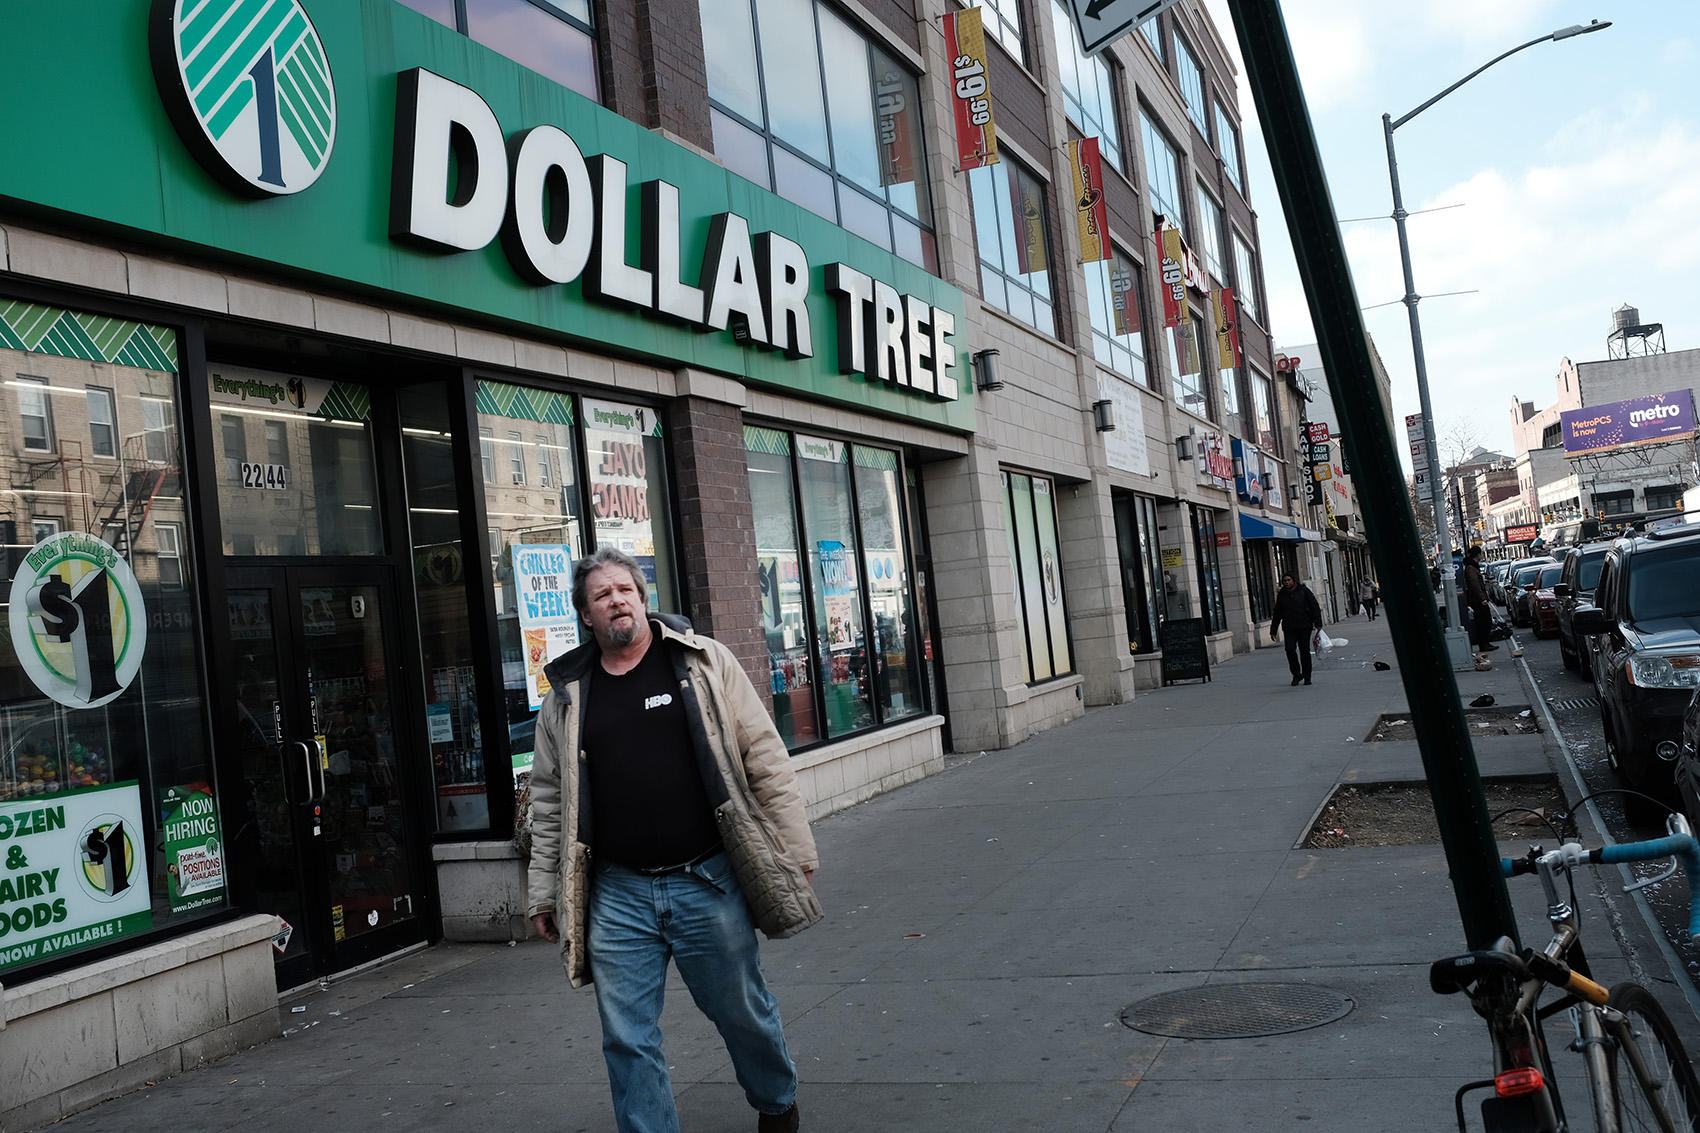 Dollar-Store Dominance Comes With A Cost For Low-Income Americans